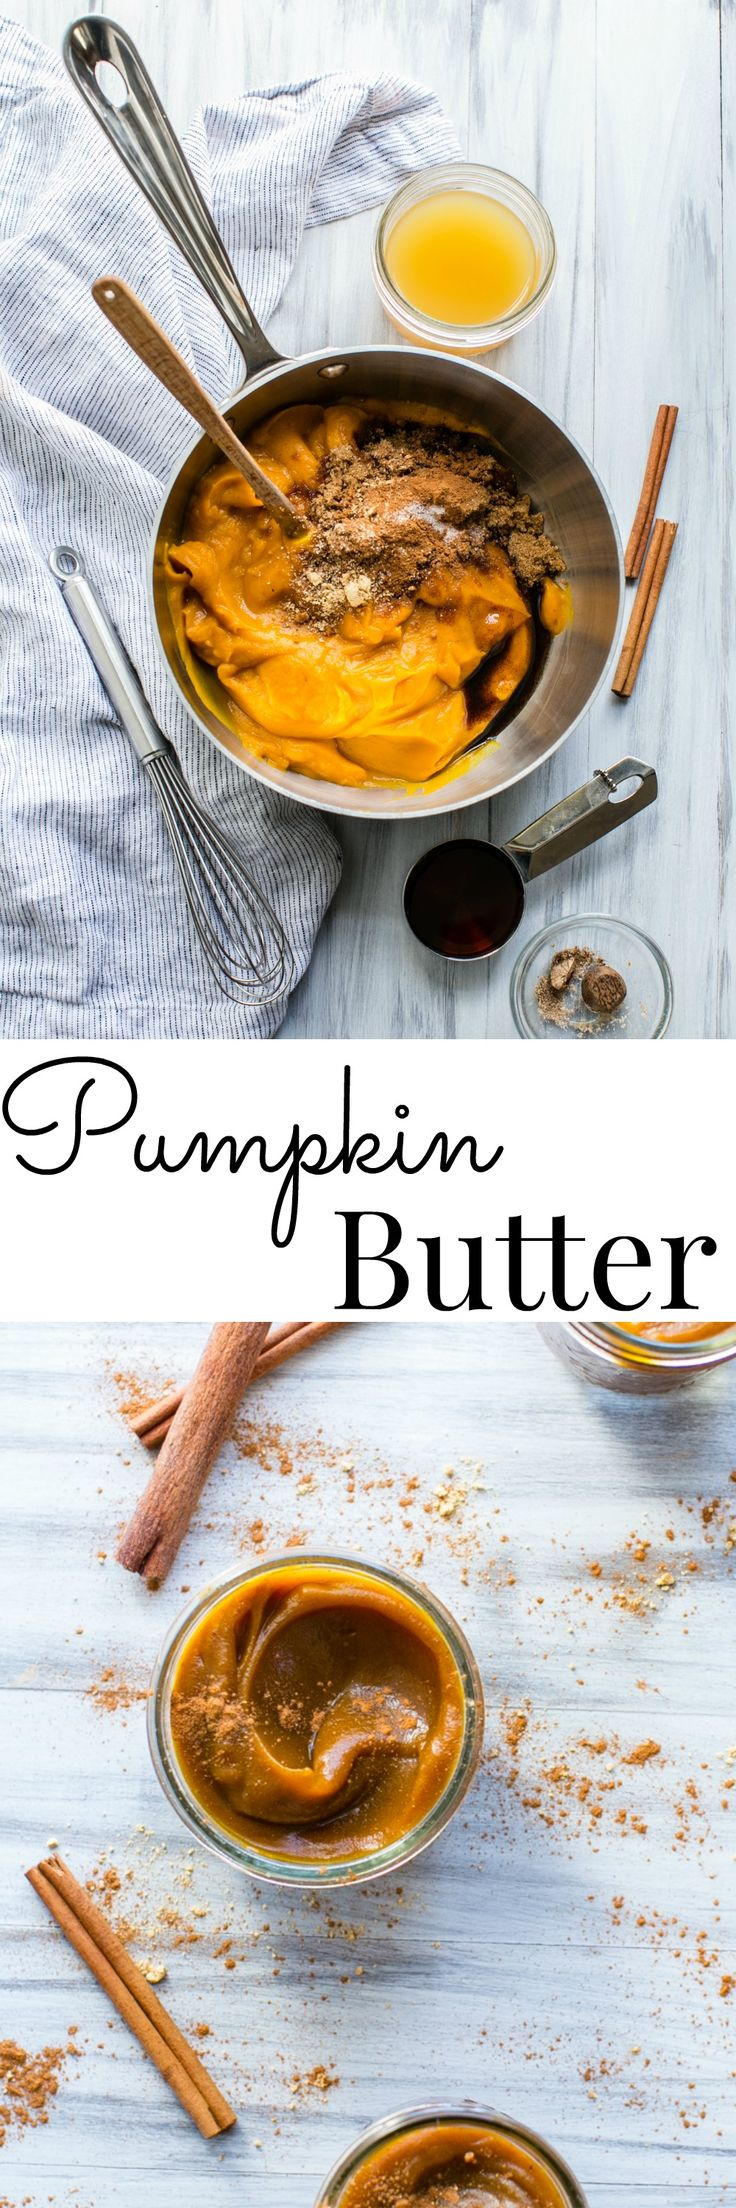 Slather it on biscuits, toast, waffles, eat it with a spoon or swirl it into oatmeal. Freezer friendly and makes a generous gift. Pumpkin Butter | Vegan + Gluten Free | Vanilla And Bean